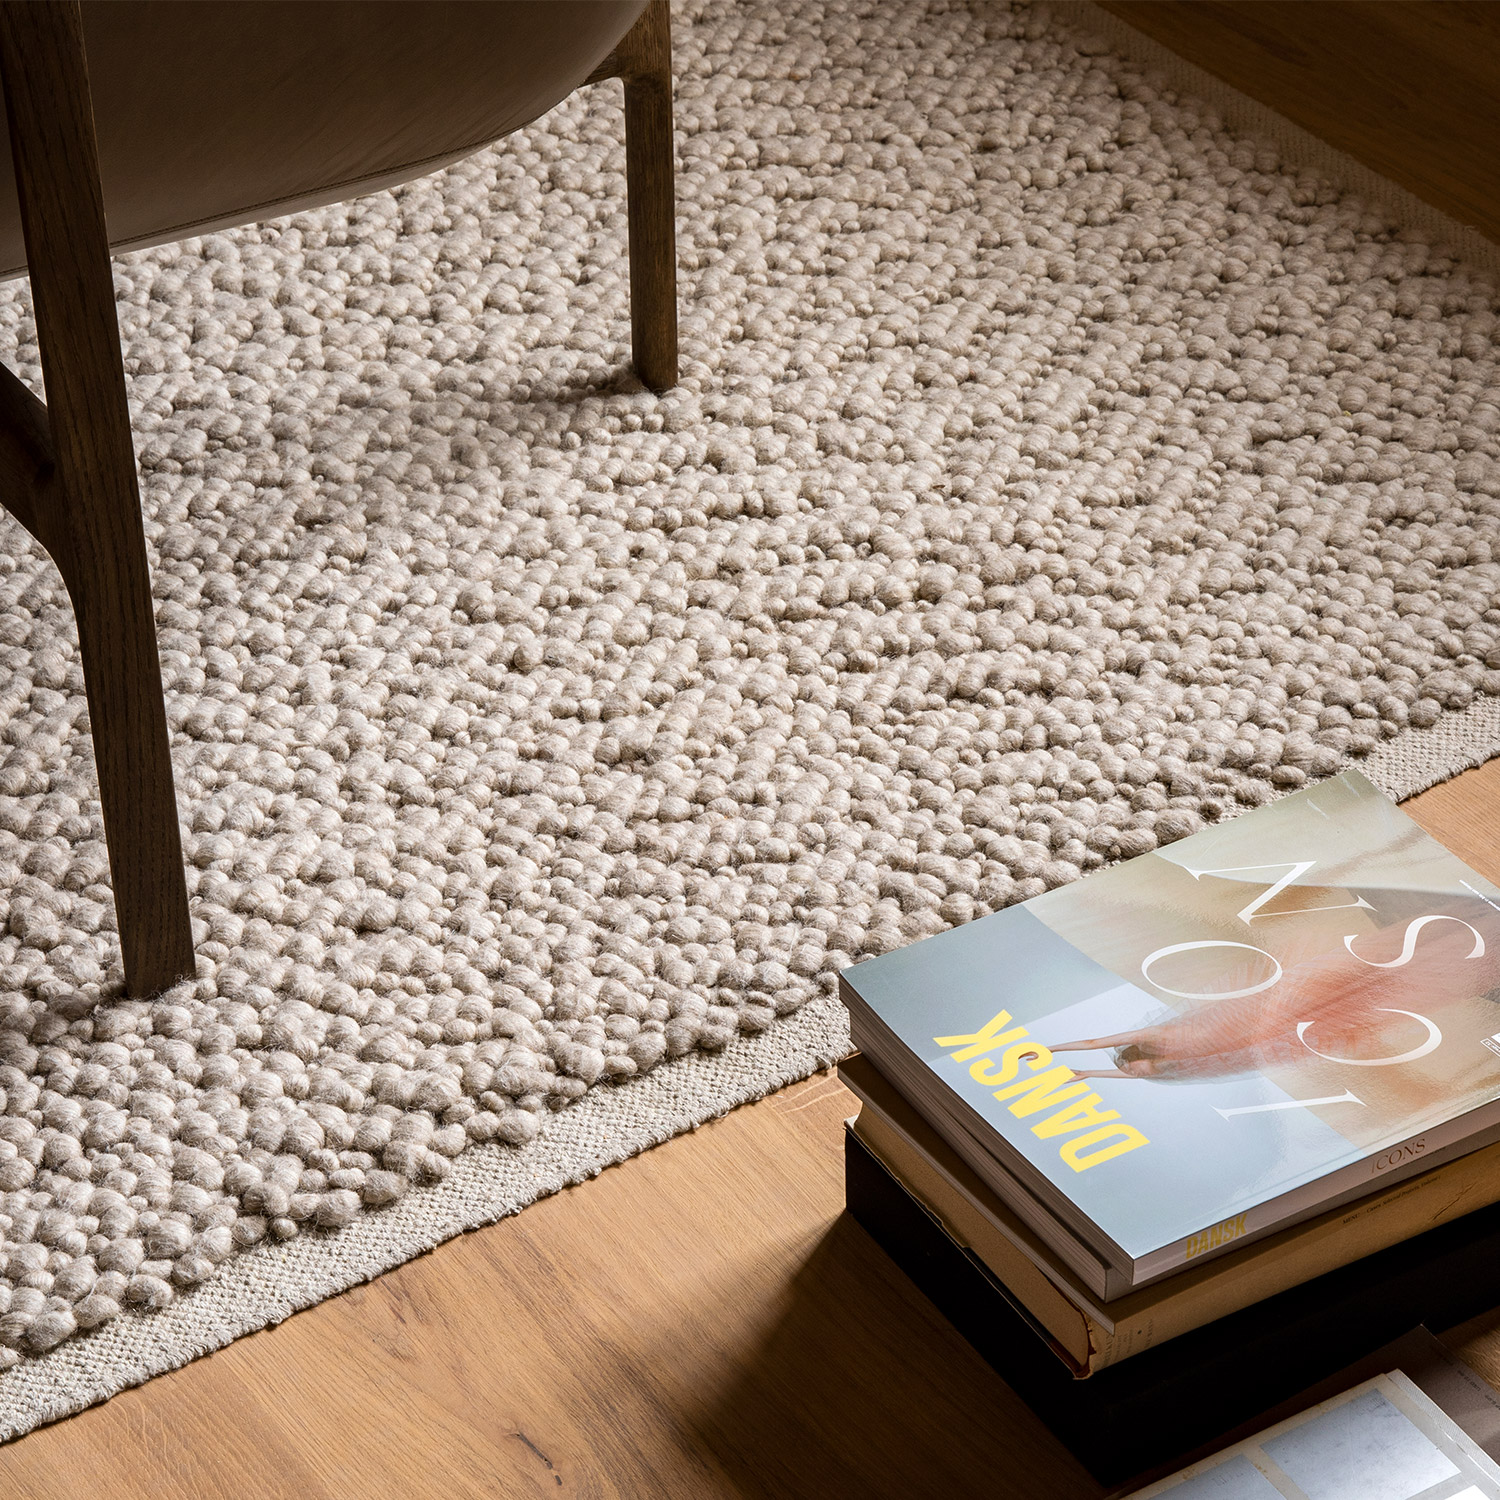 textured cream rug on teak floor with art magazines